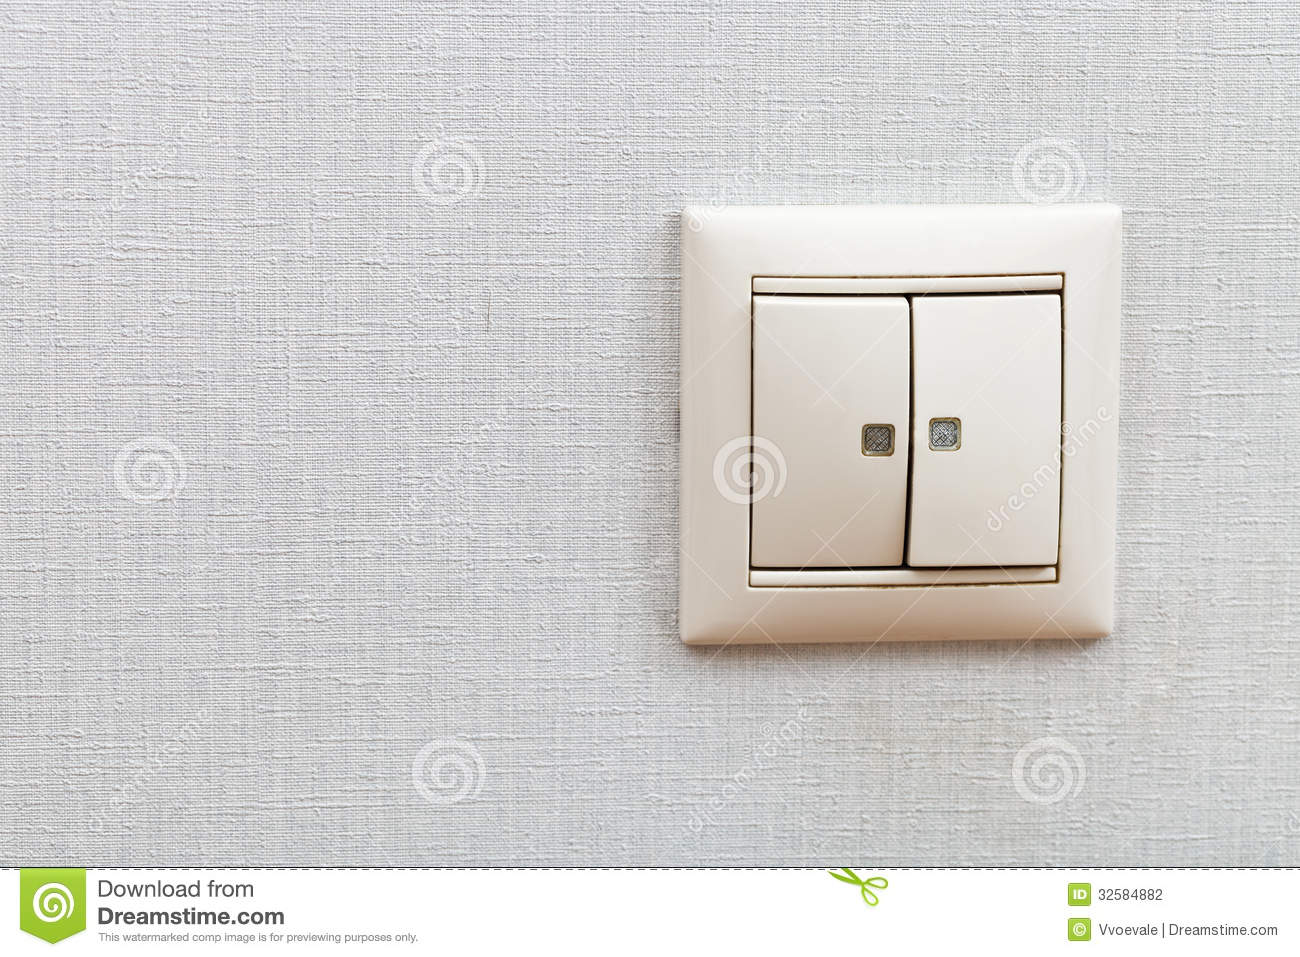 Wall mounted light switch stock photo image of plastic 32584882 wall mounted light switch aloadofball Gallery